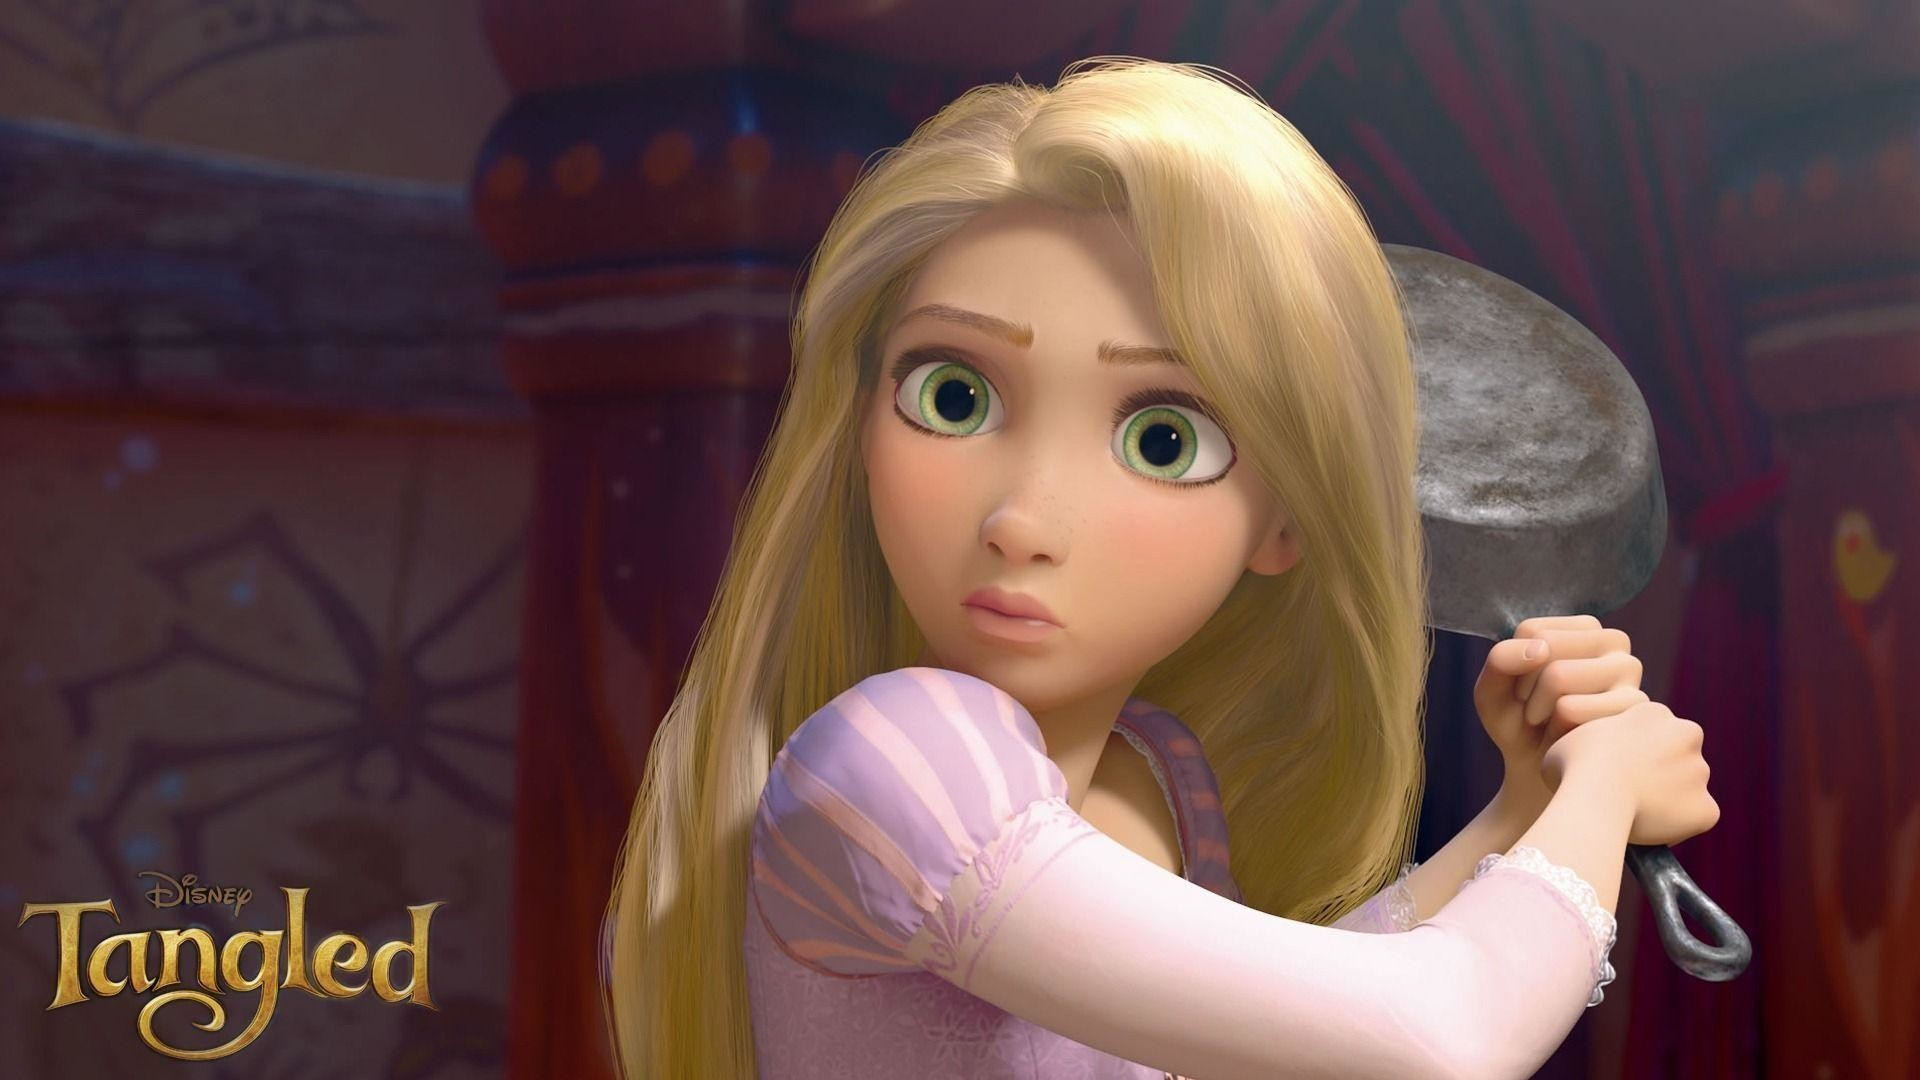 Tangled Wallpapers   HD Wallpapers Base